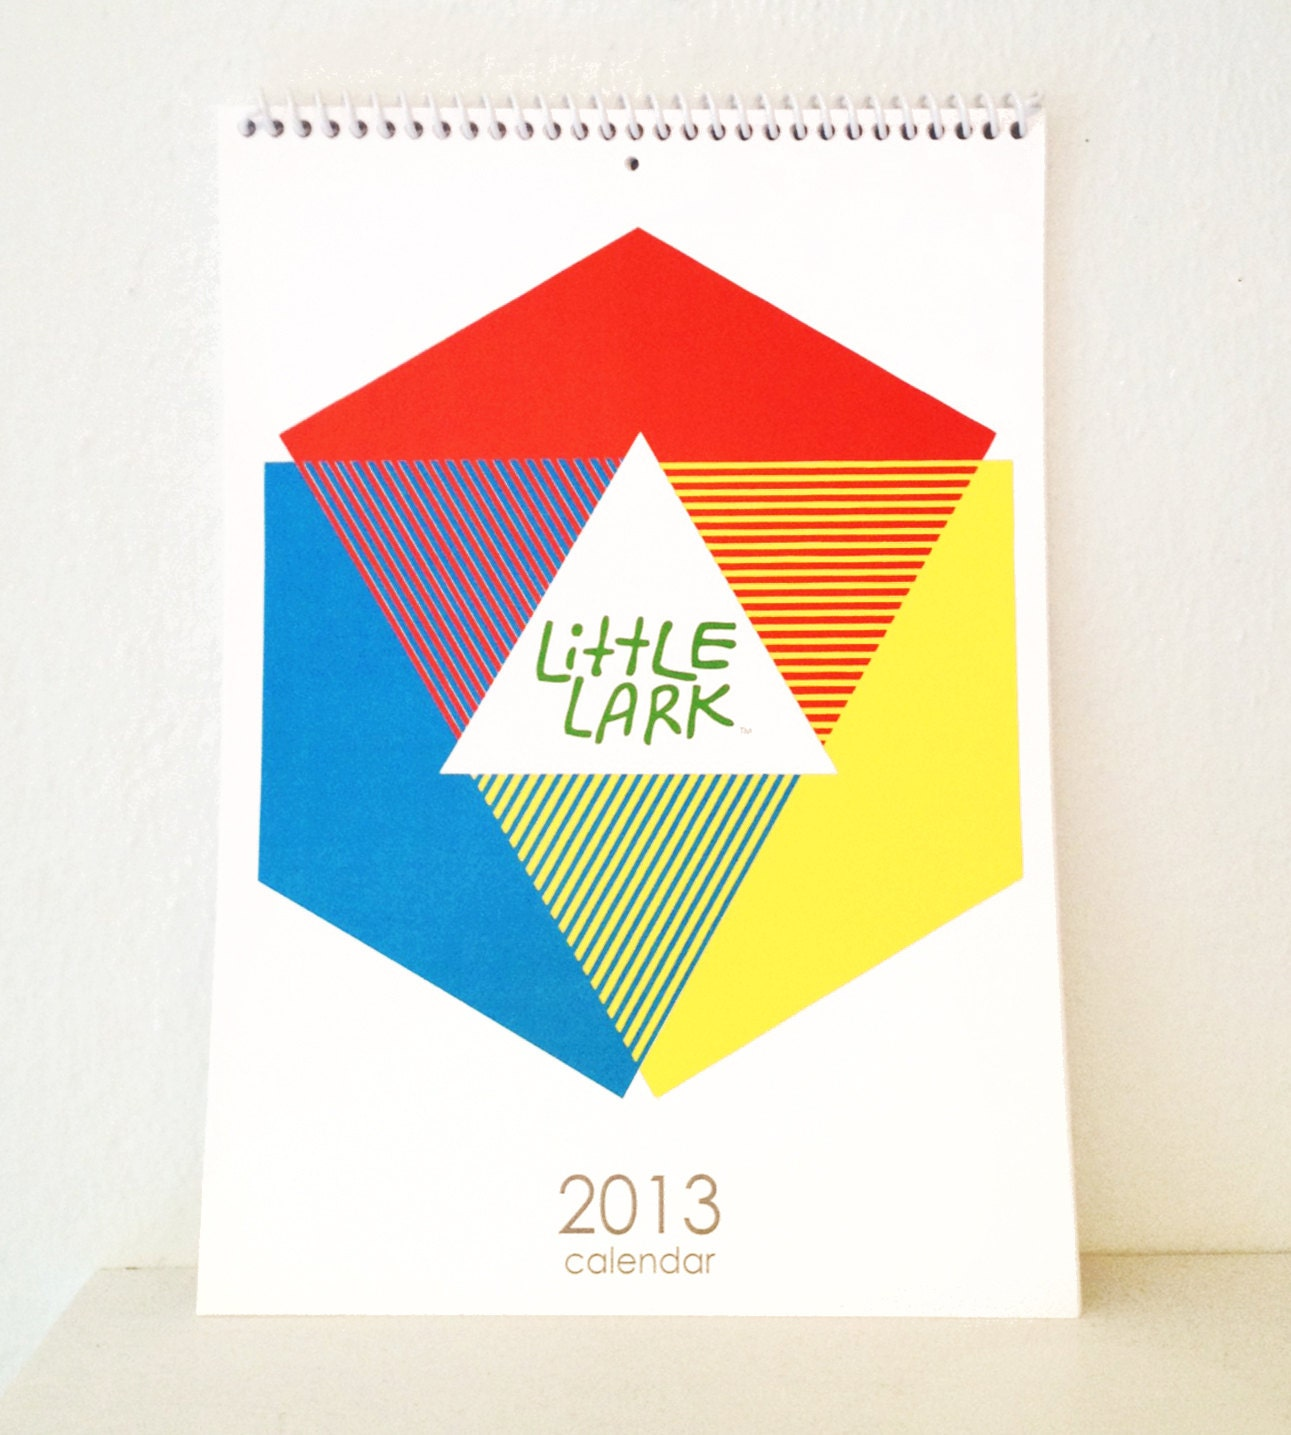 Little Lark 2013 wall desk Calendar, digitally printed, full color, original designs, perfect holiday gift for nature lover. - alittlelark